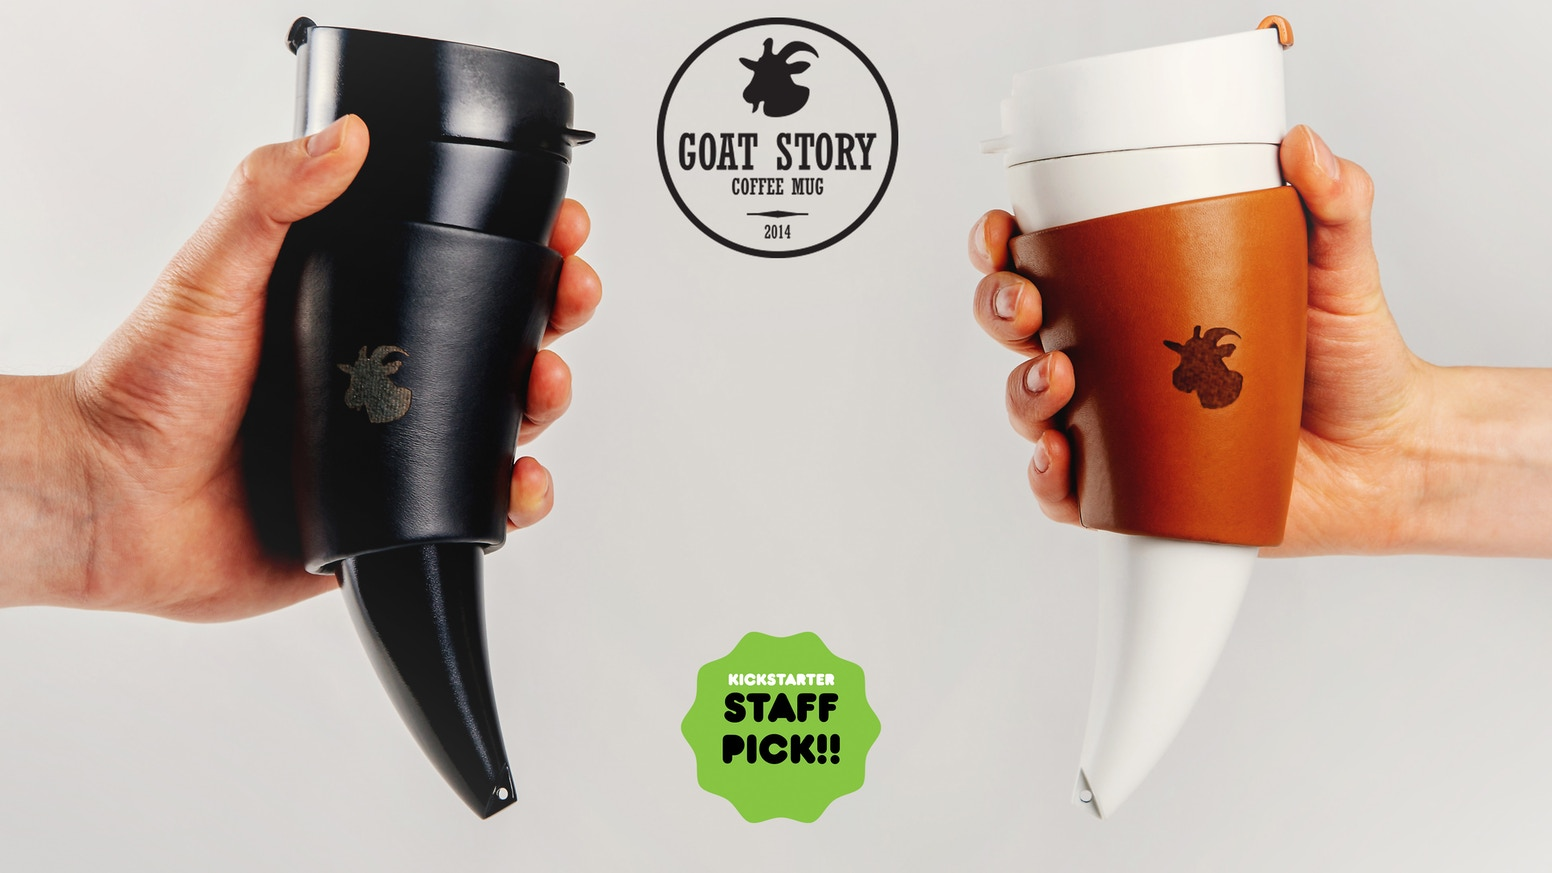 Goat story and shepherd's legacy inspired us to design something original, different and sustainable. GOAT MUG!